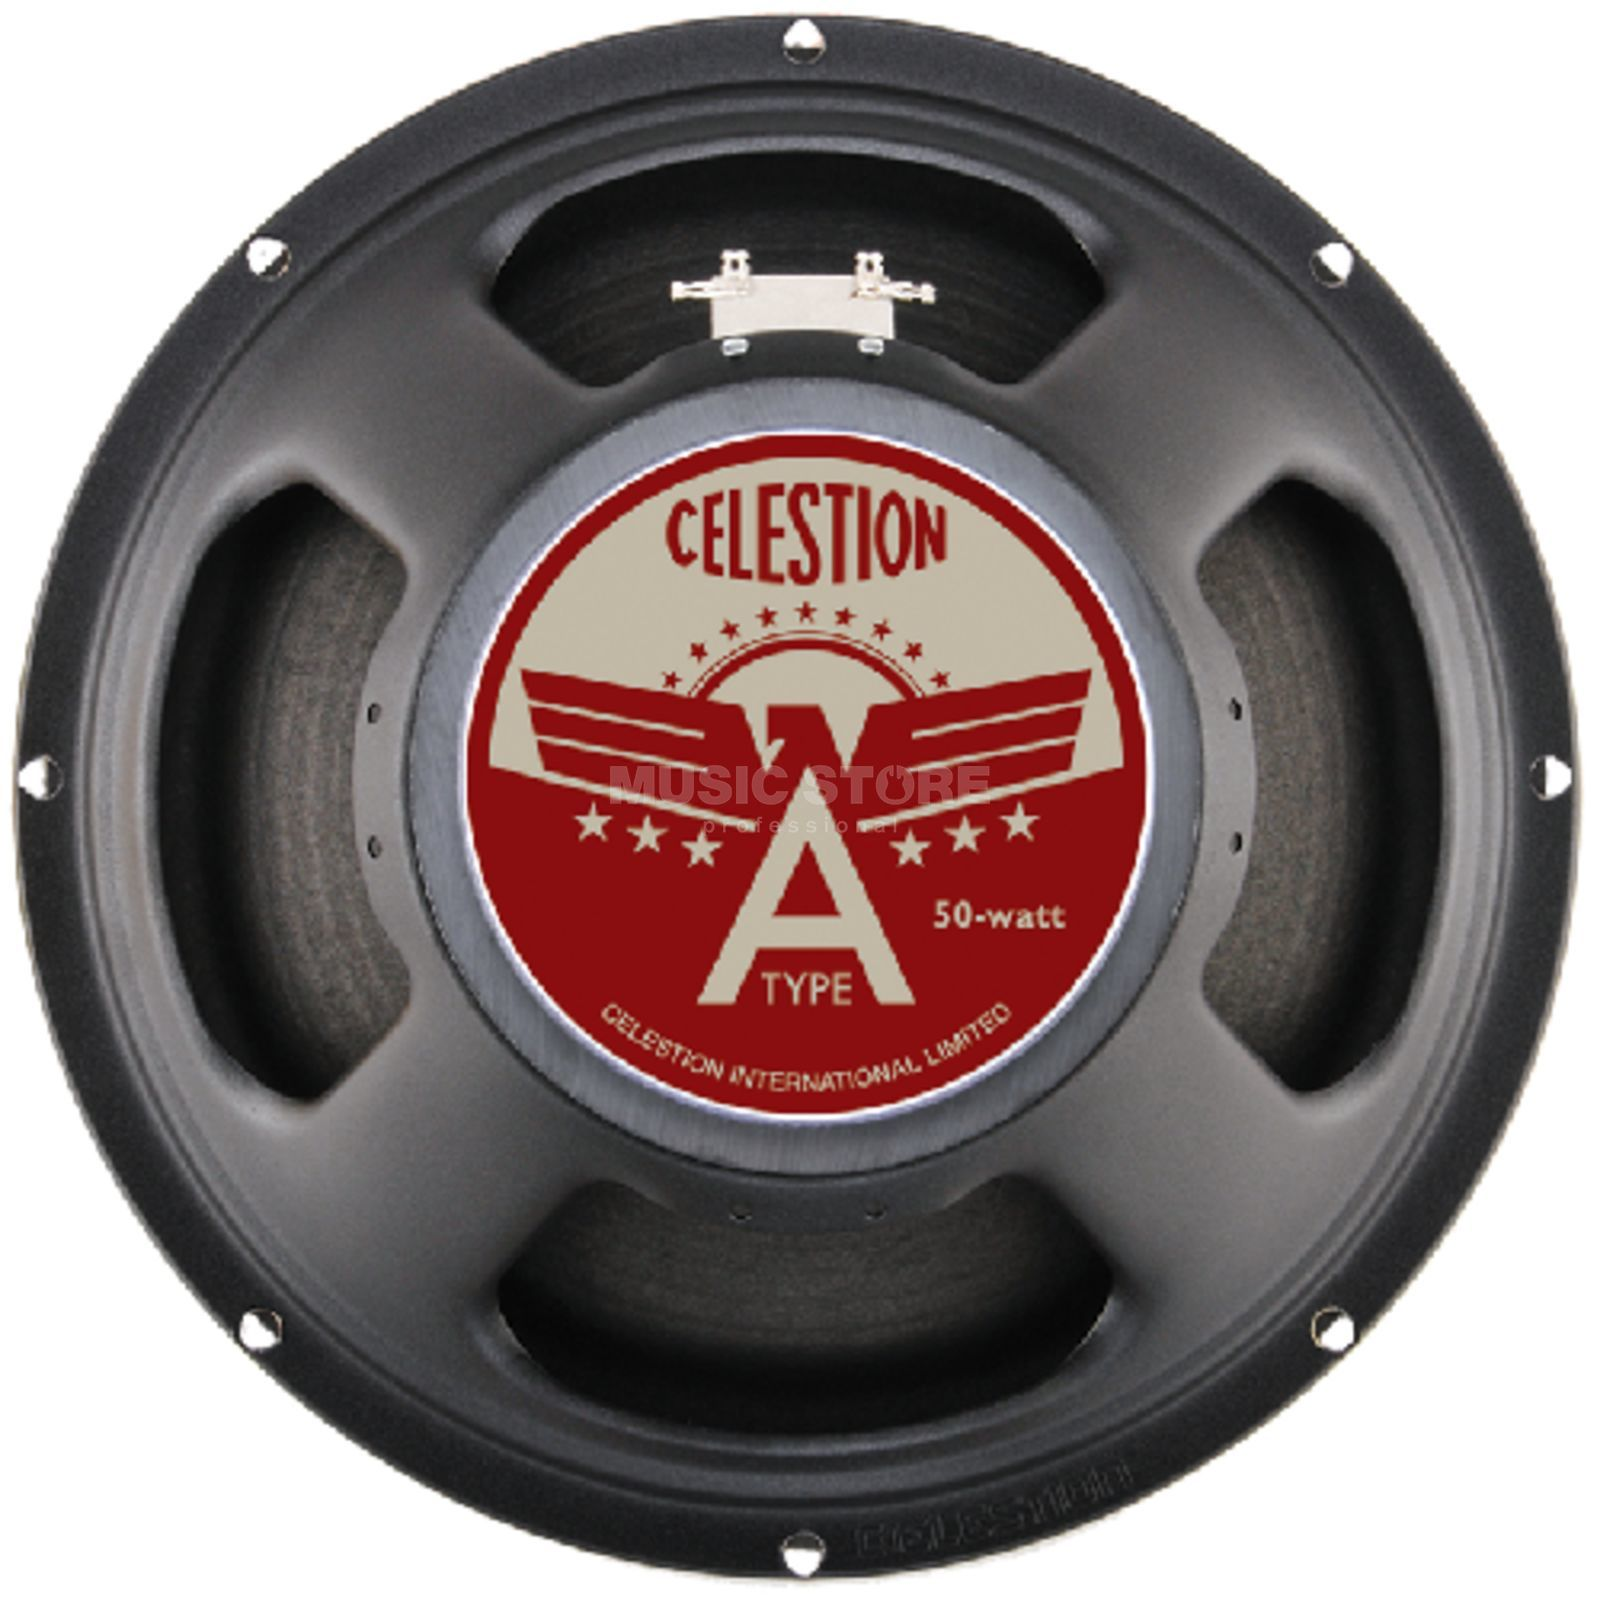 "Celestion A-Type 12"" Speaker 16 Ohm Produktbild"